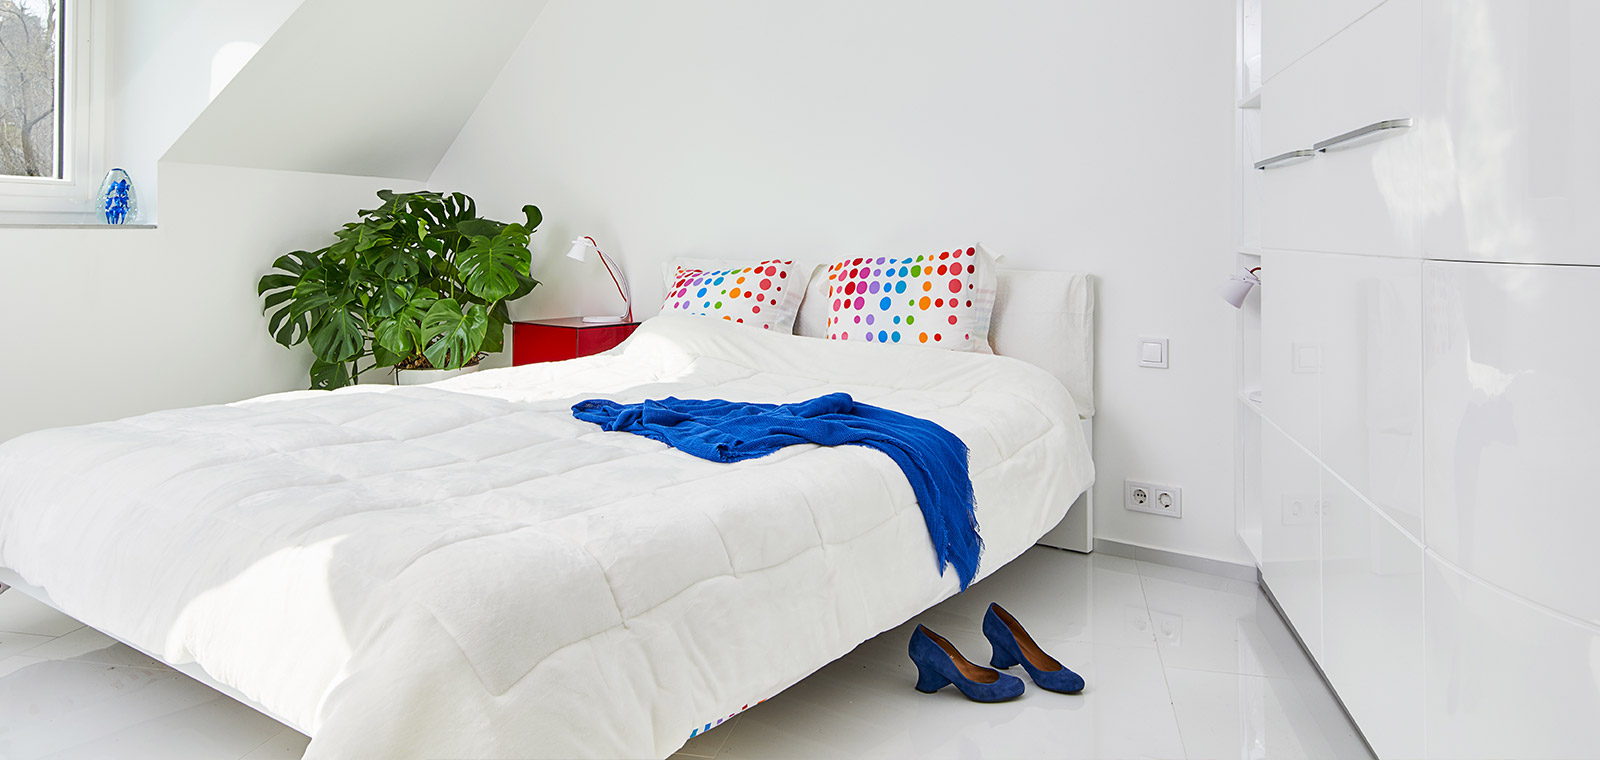 White bedroom design idea in a renovated apartment located in Budapest, Hungary